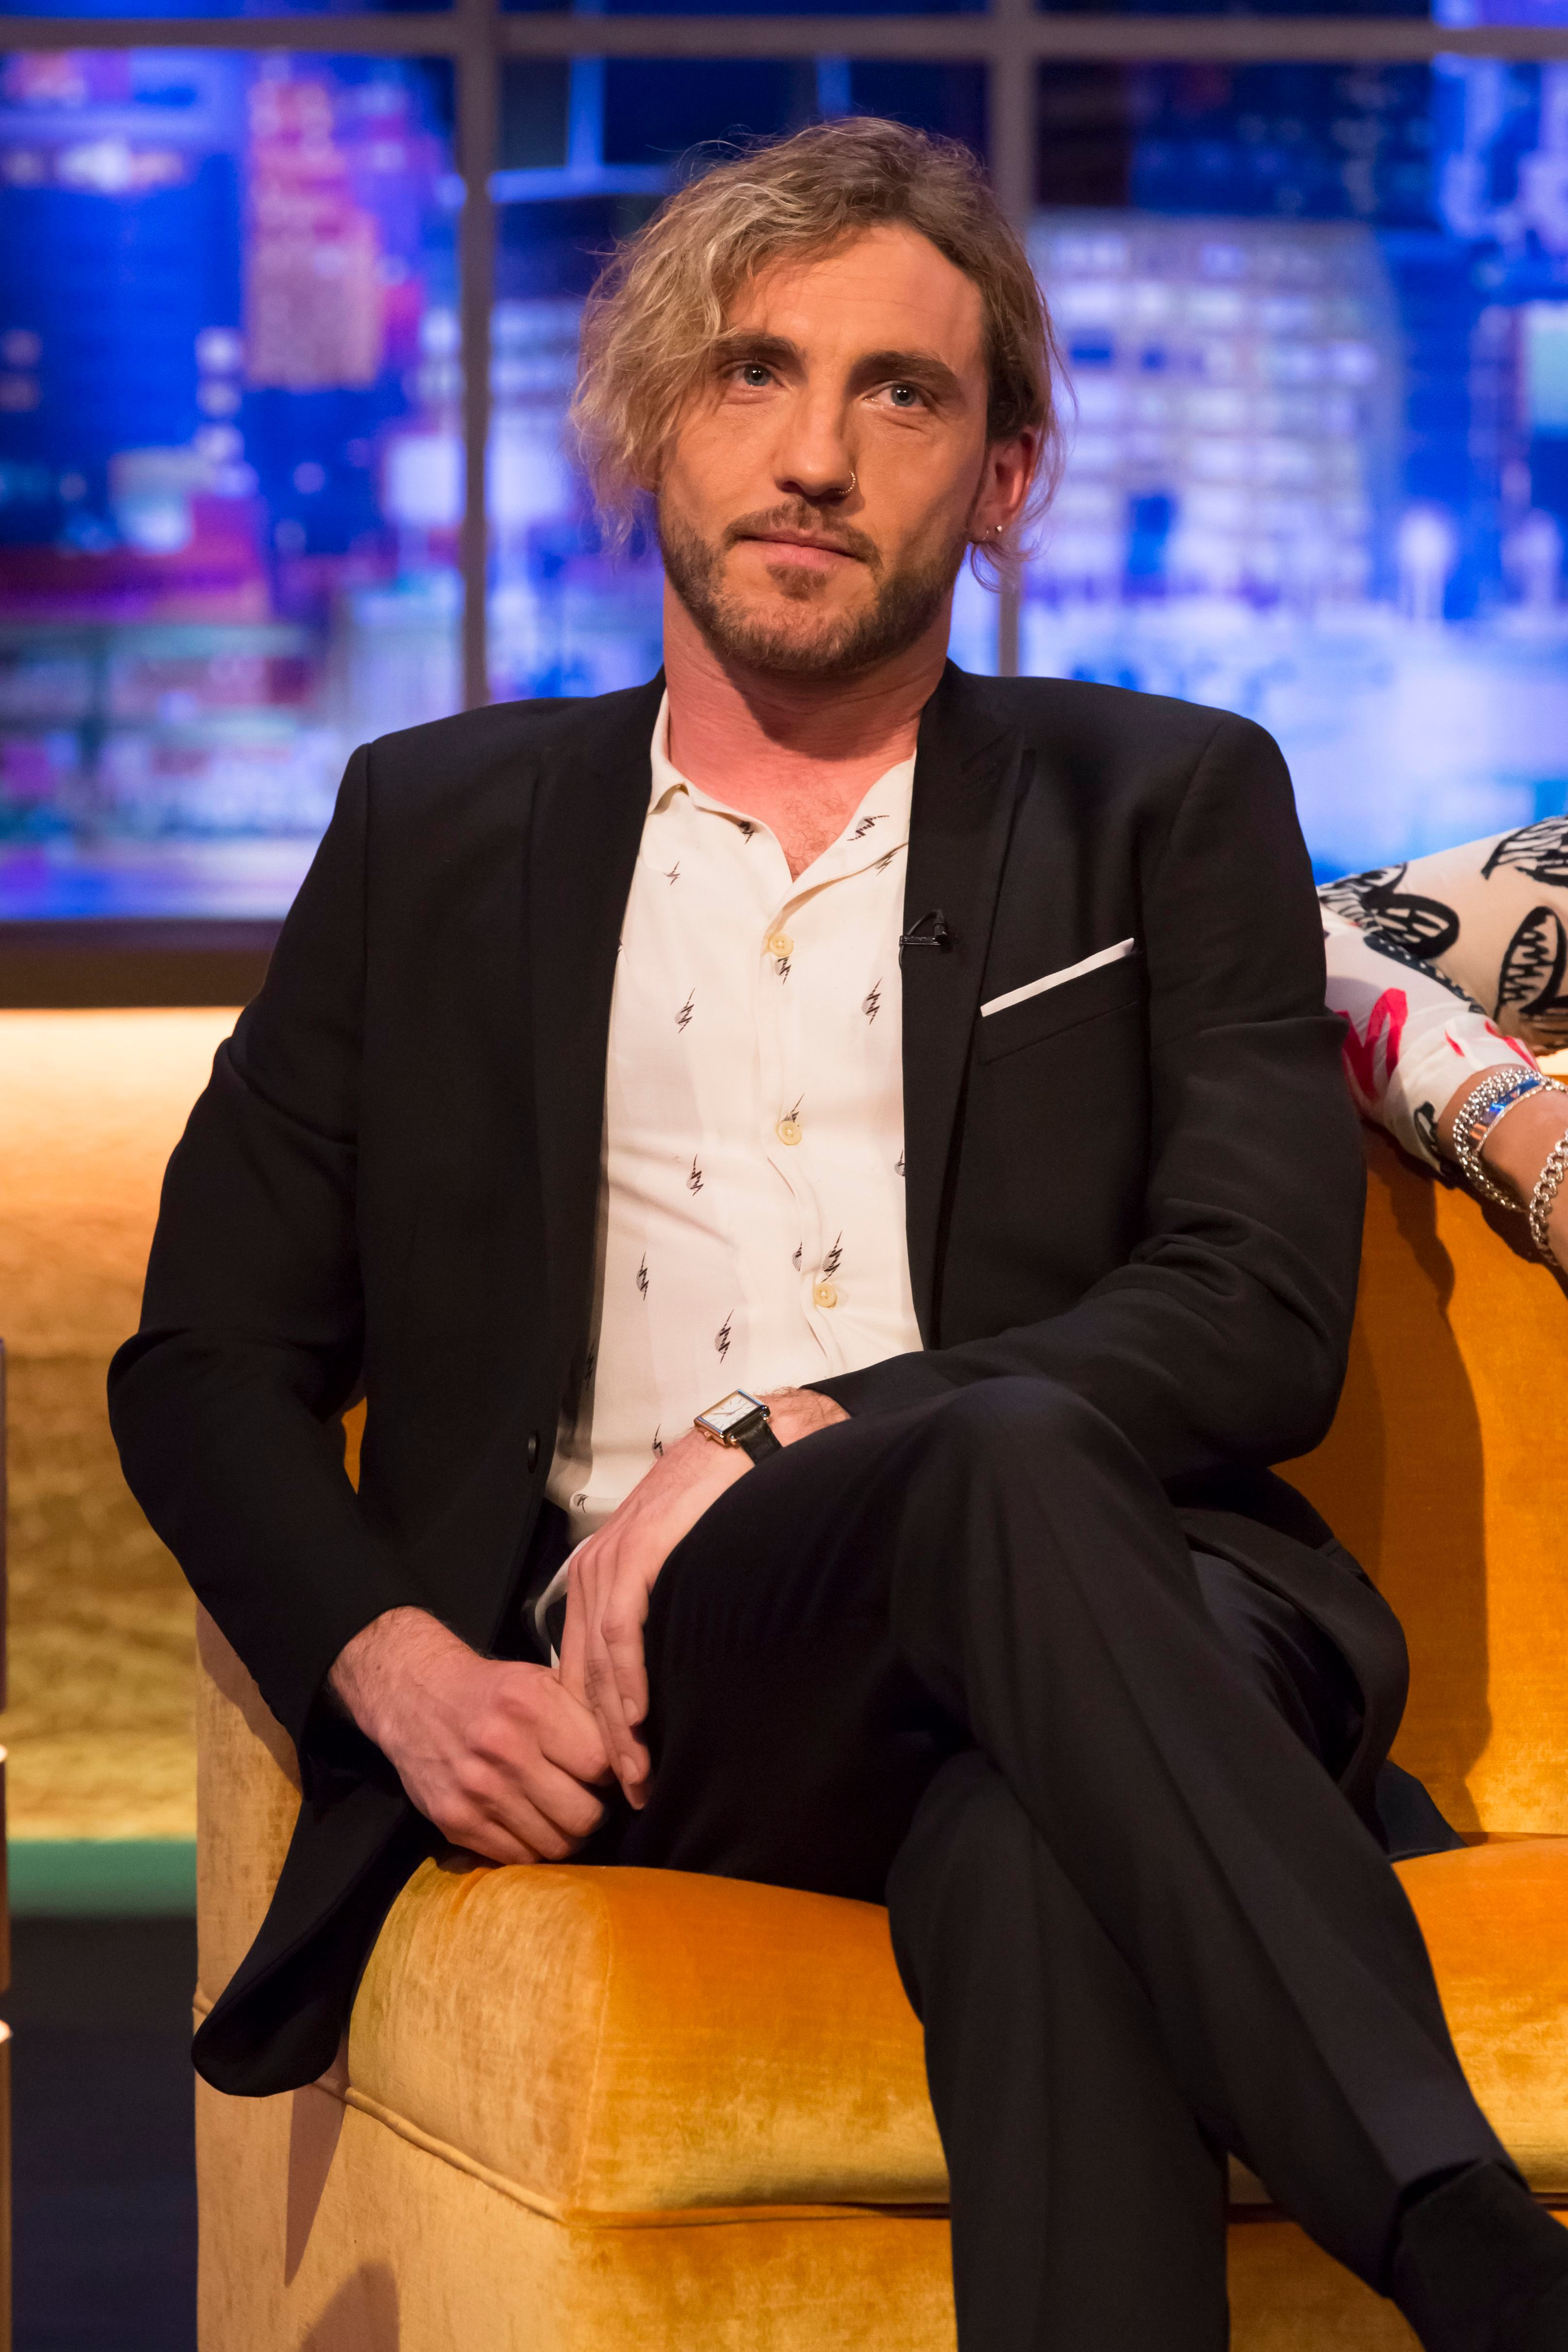 Mandatory Credit: Brian J Ritchie/Hotsauce Editorial Use Only Mandatory Credit: Photo by Brian J Ritchie/Hotsauce/REX/Shutterstock (10125518ay) Seann Walsh 'The Jonathan Ross Show' TV show, series 14, Episode 1, London, UK - 02 Mar 2019 Stand up comedian, Seann Walsh, joined the show in his first interview since leaving Strictly Come Dancing last series and addressed for the first time, the much talked about scandal involving kissing his dance partner, Katya Jones, whilst in a relationship with girlfriend, Rebecca Humphries.